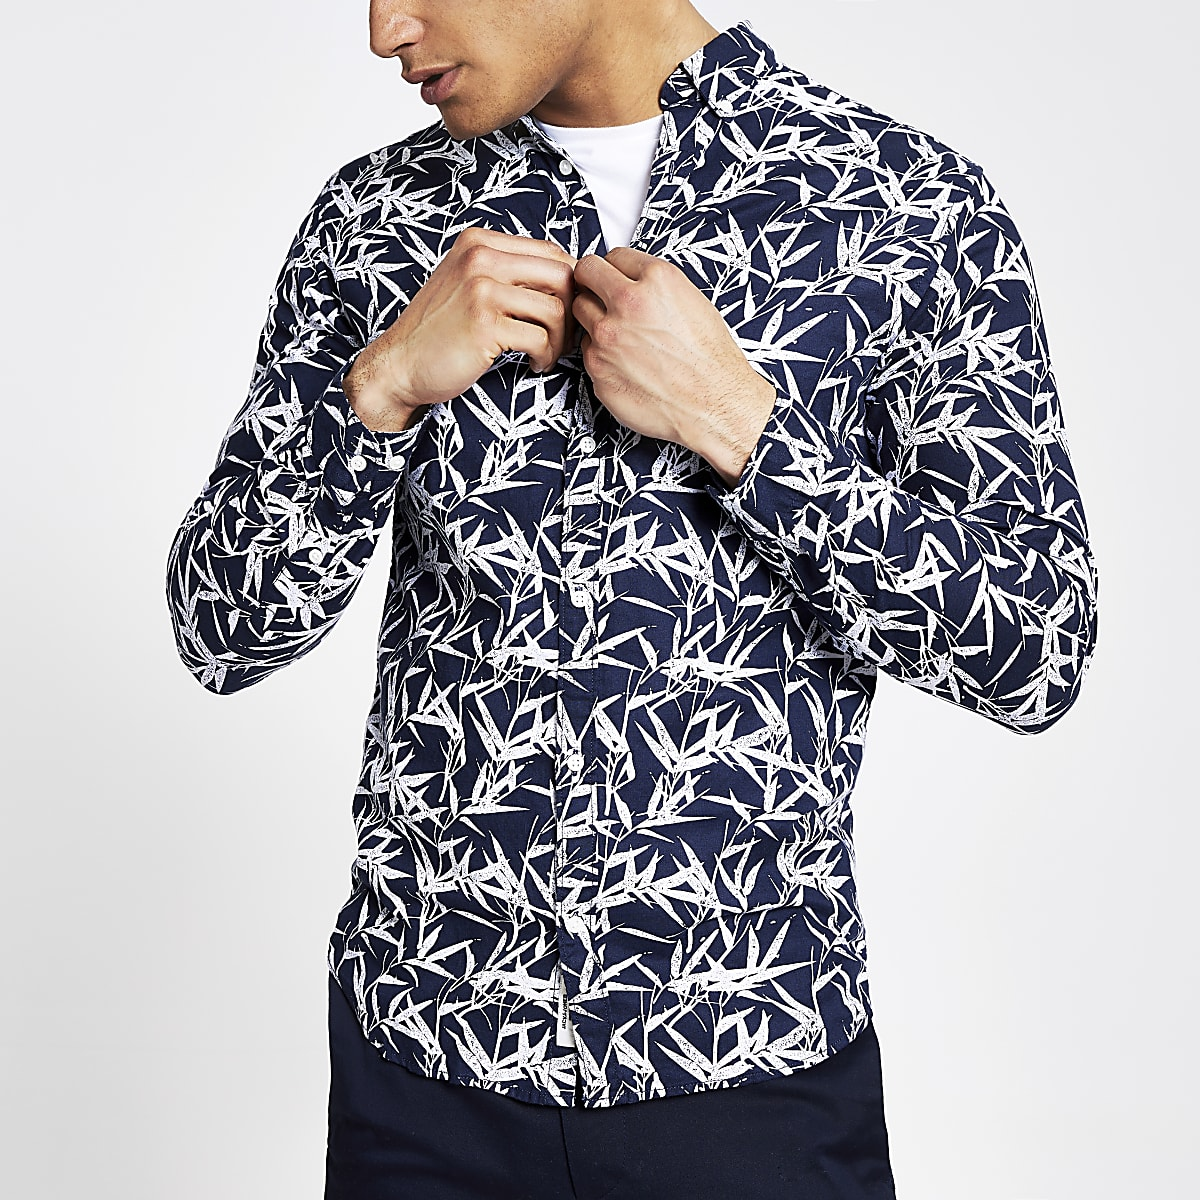 Jack and Jones navy leaf print long shirt